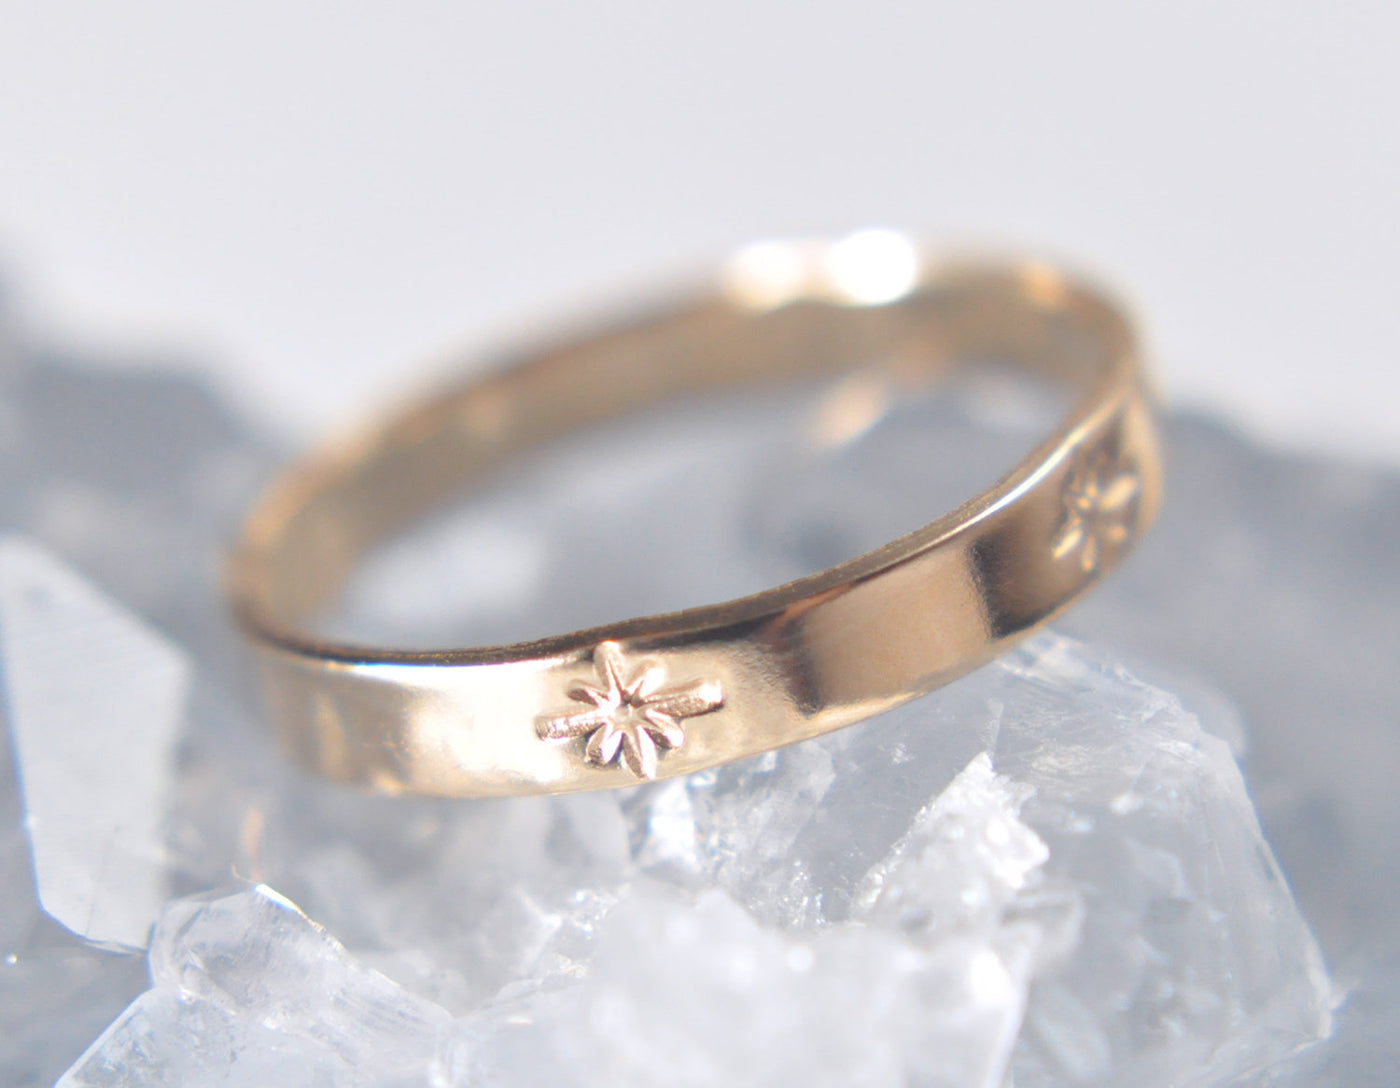 Aven 3 mm Pattern - Starburst - 14K Yellow Gold Ring